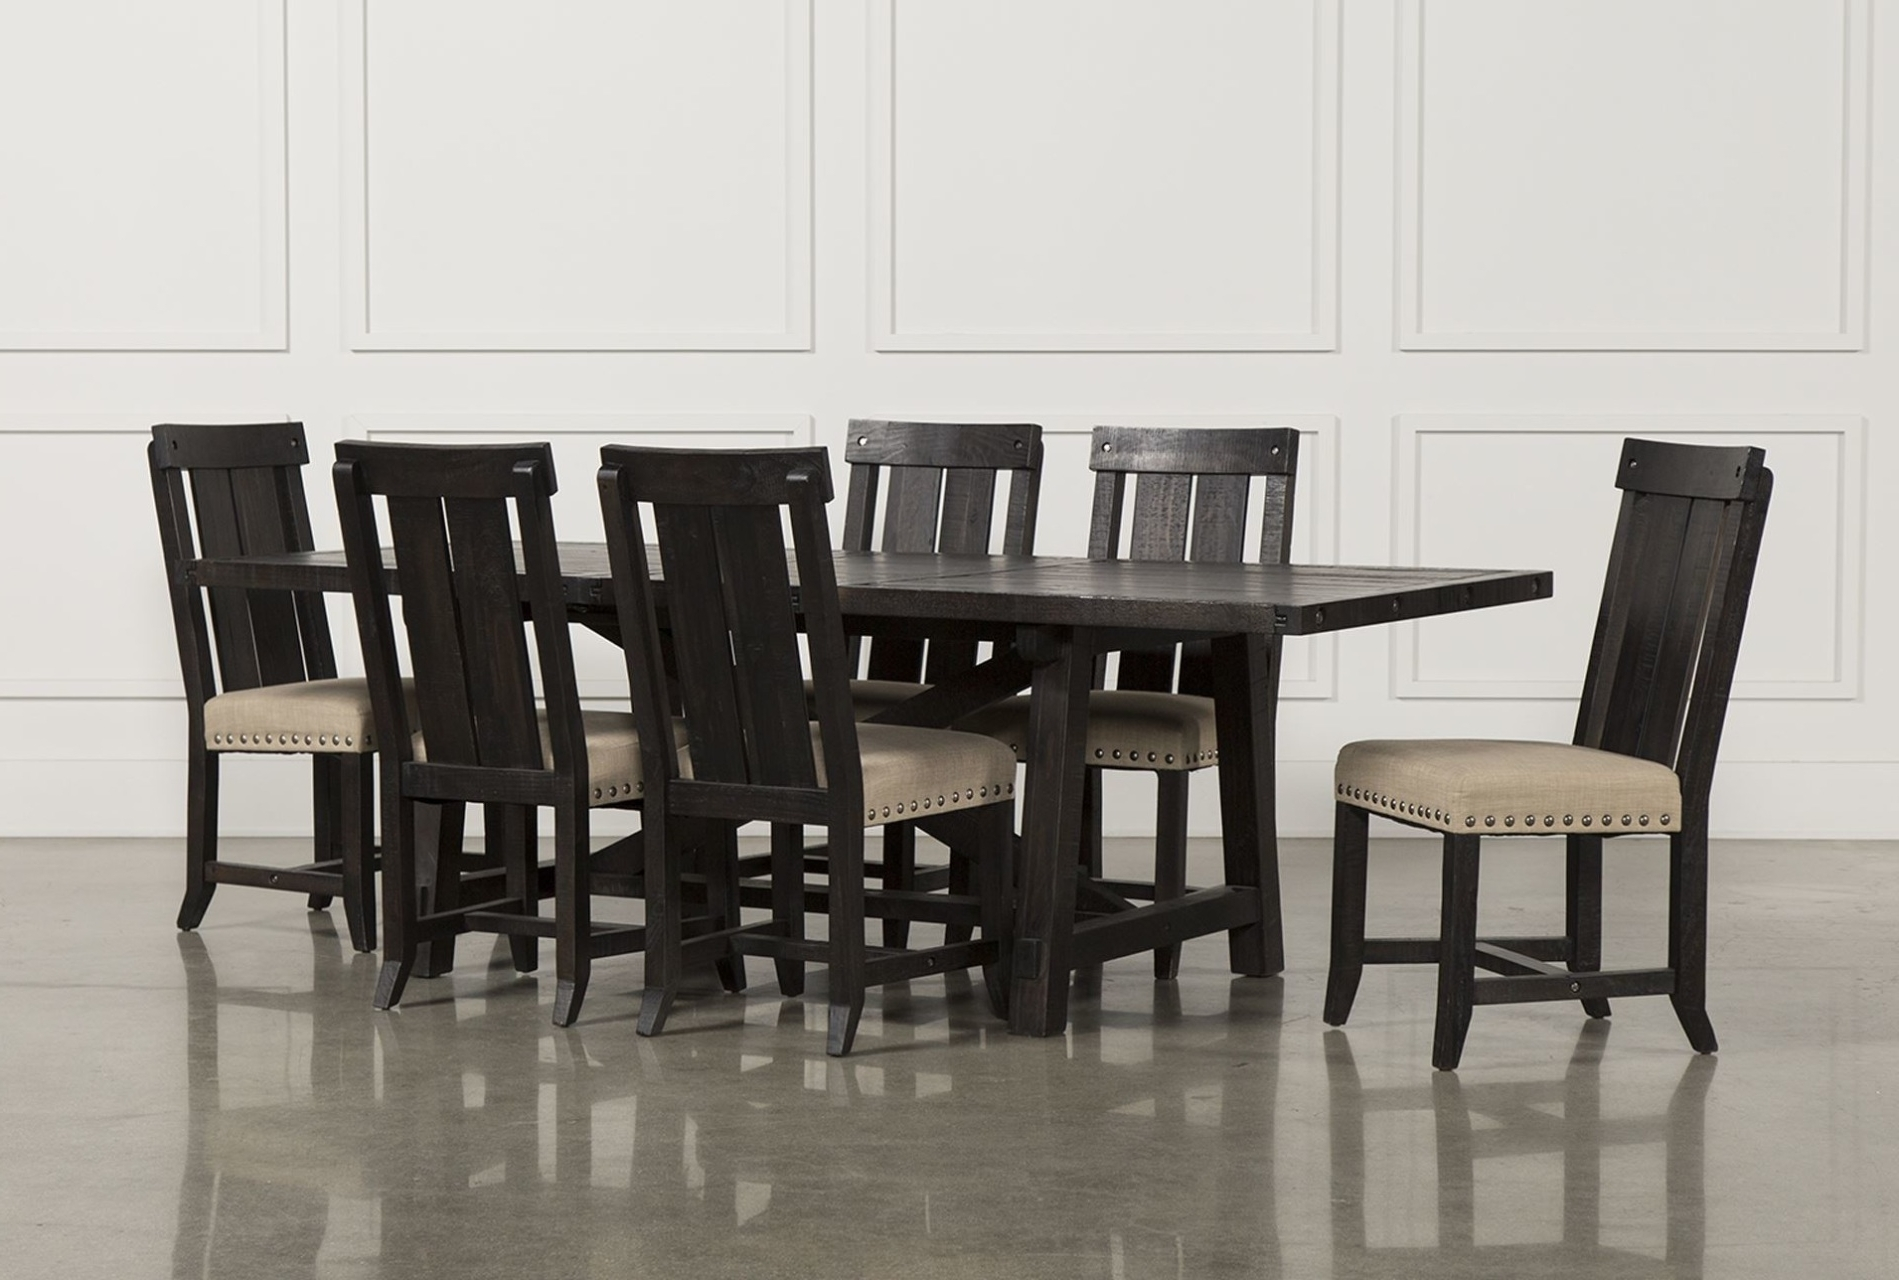 Popular Tables, Chairs, & Servers – Hello Furniture With Regard To Jaxon Wood Side Chairs (View 7 of 20)